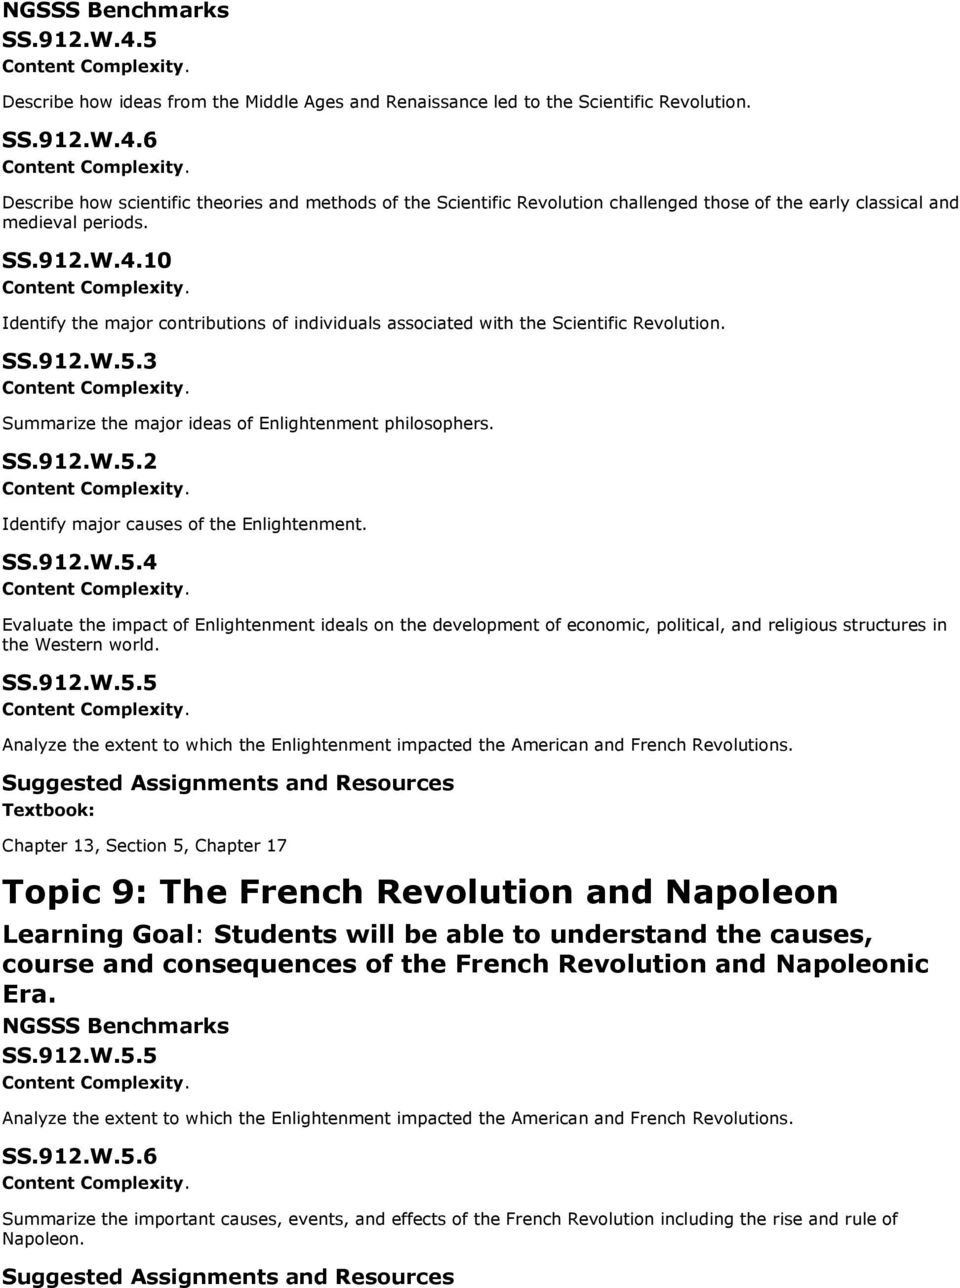 SS.912.W.5.4 Evaluate the impact of Enlightenment ideals on the development of economic, political, and religious structures in the Western world. SS.912.W.5.5 Analyze the extent to which the Enlightenment impacted the American and French Revolutions.